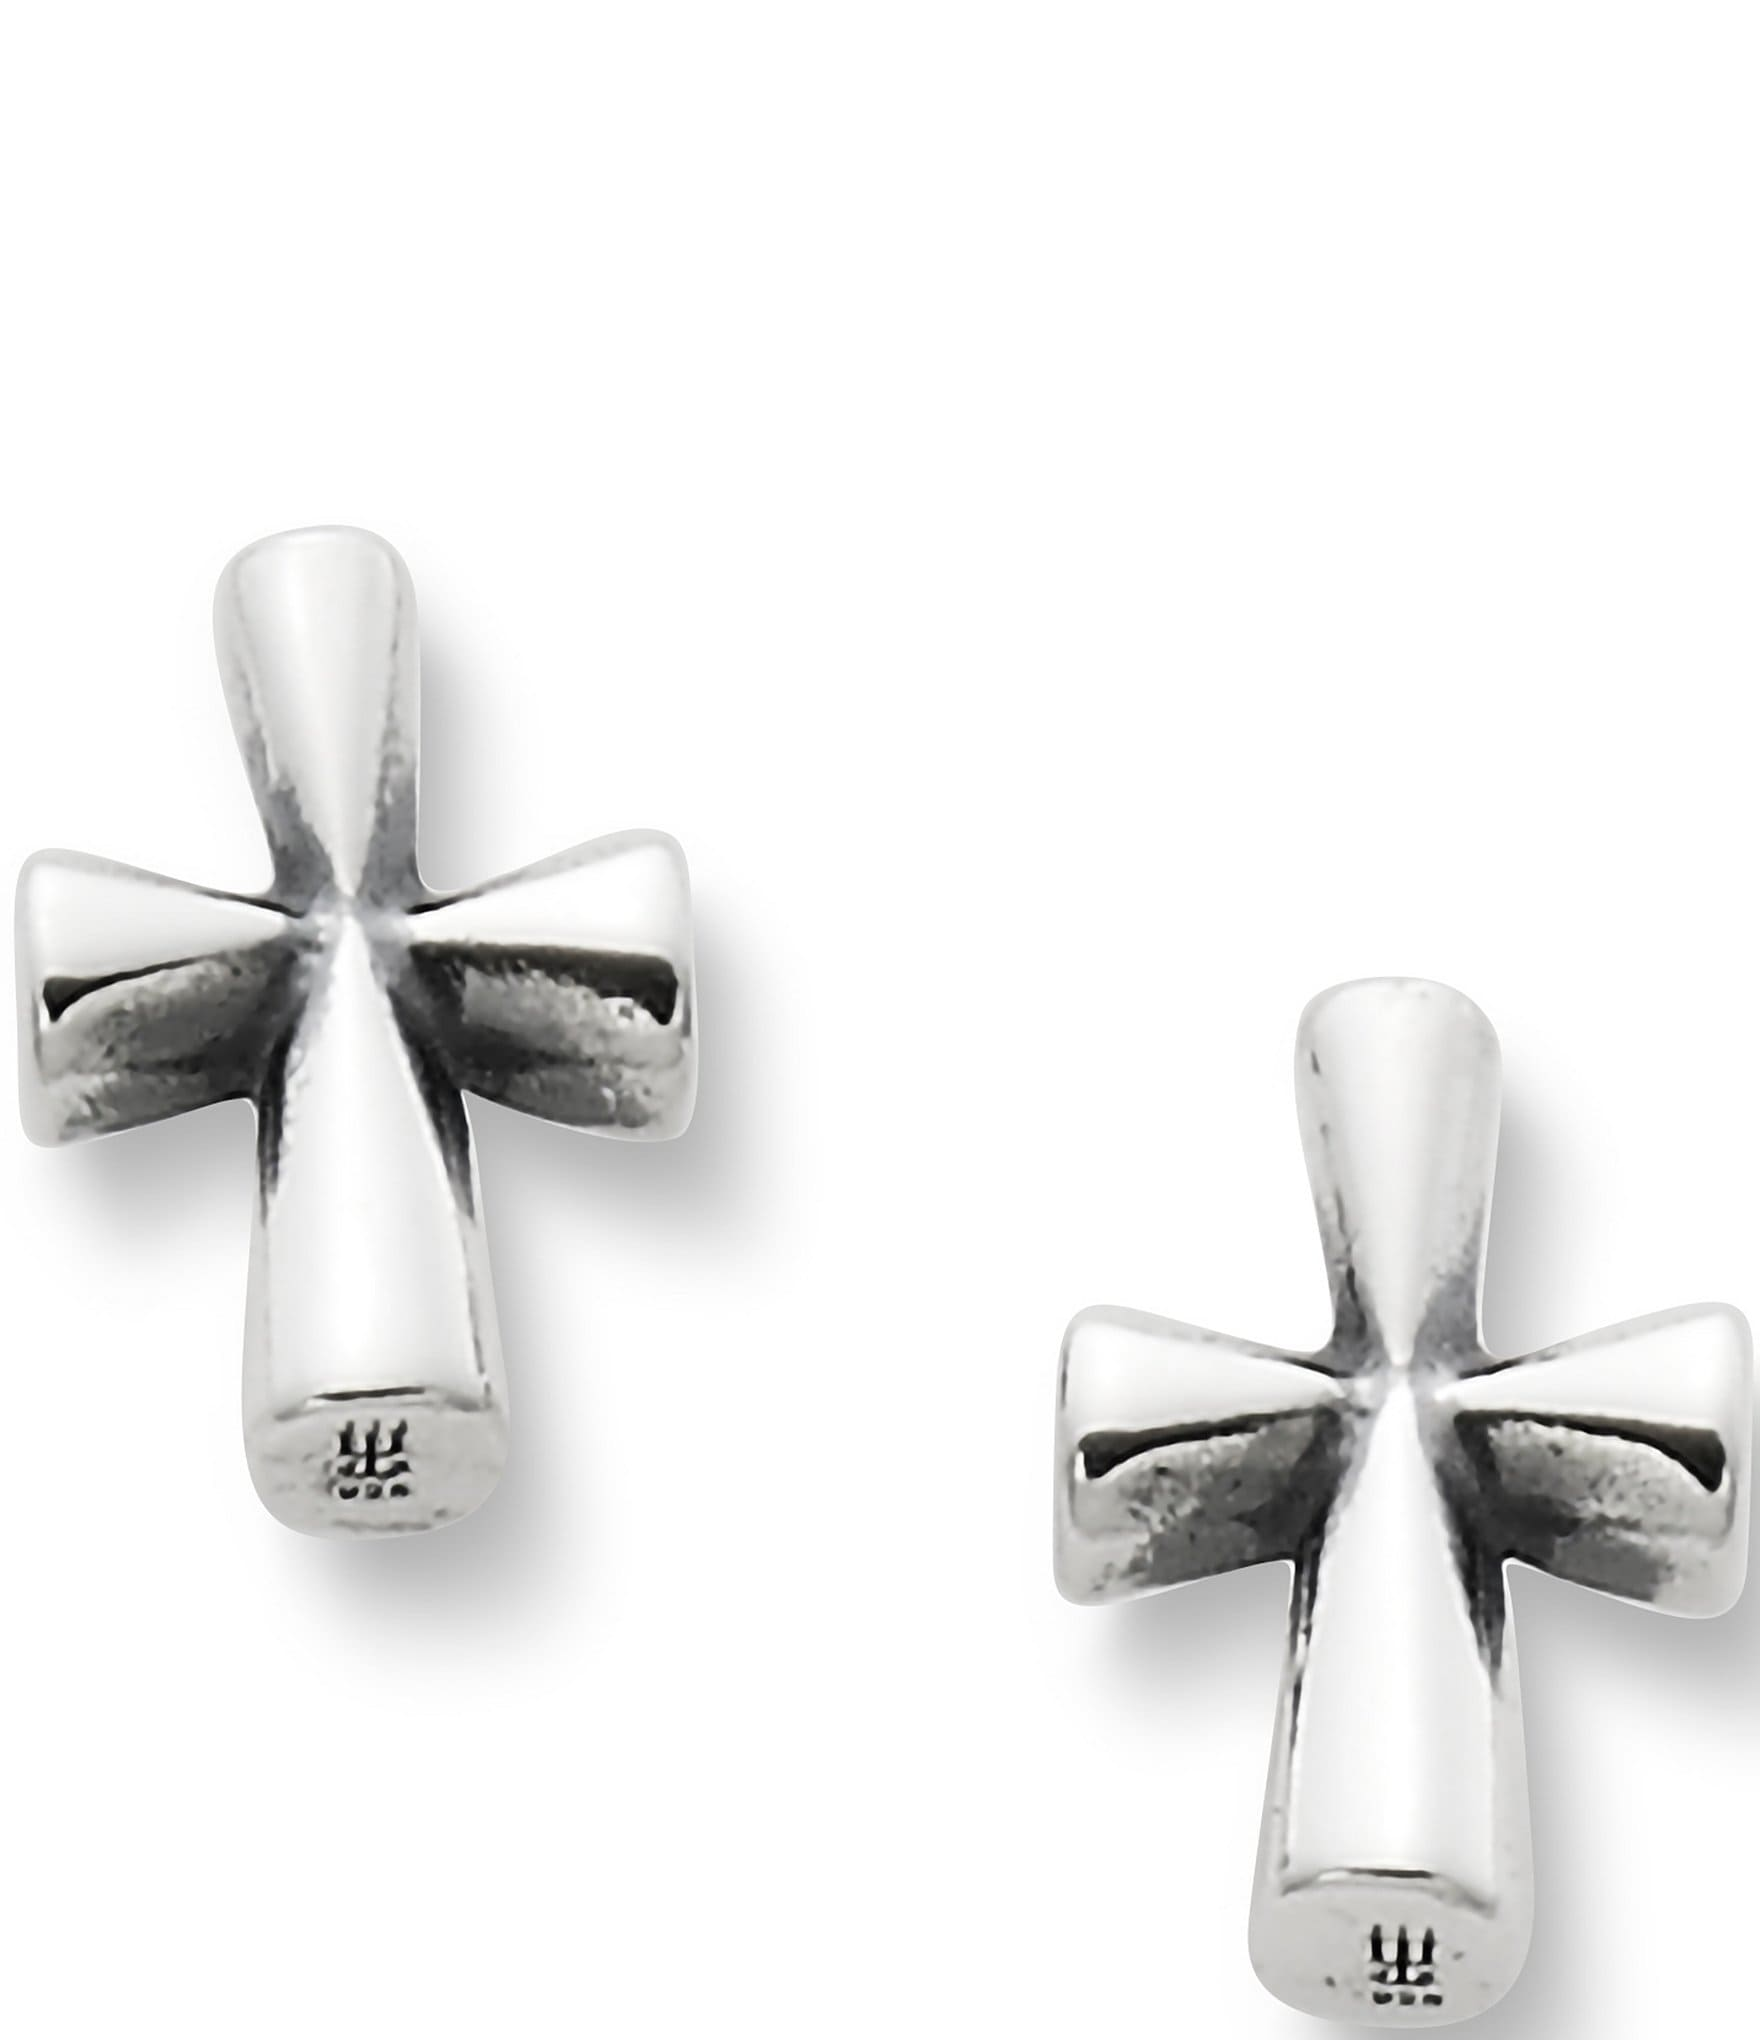 sebastian sarah pin mija small earrings minimal via cross stud ear pinterest